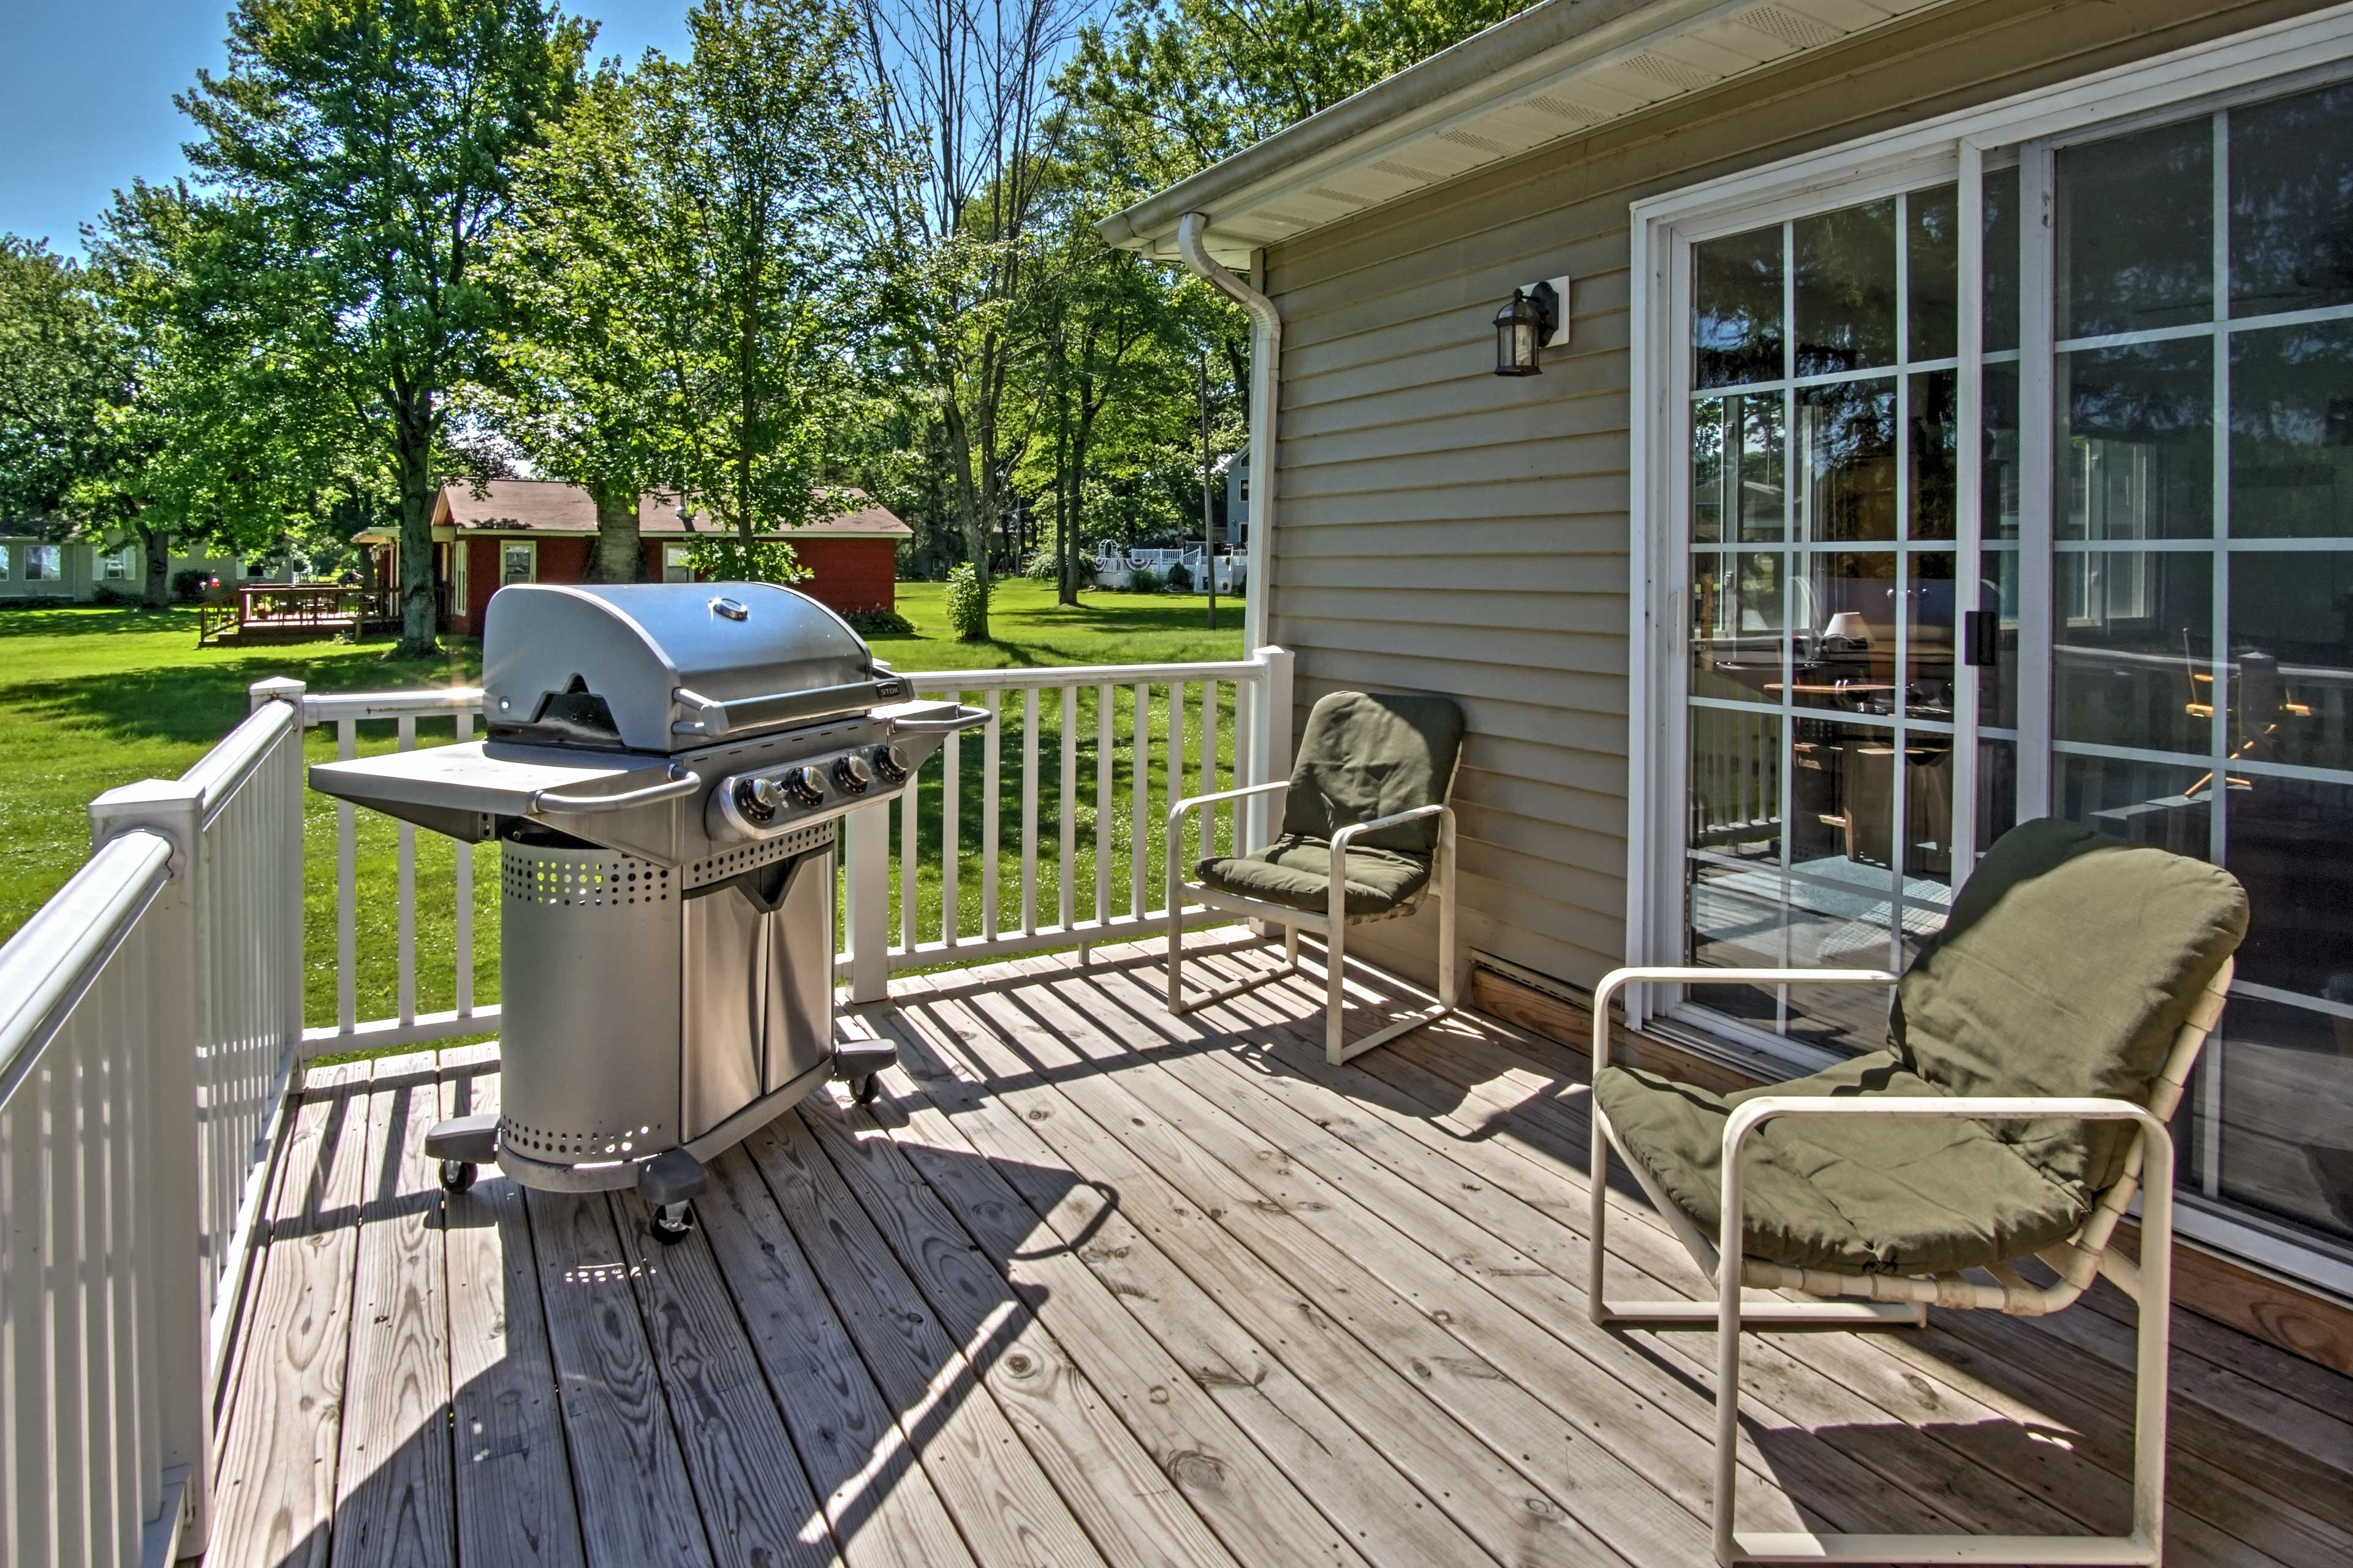 Add some smoky flavors to your vacation using the gas grill.